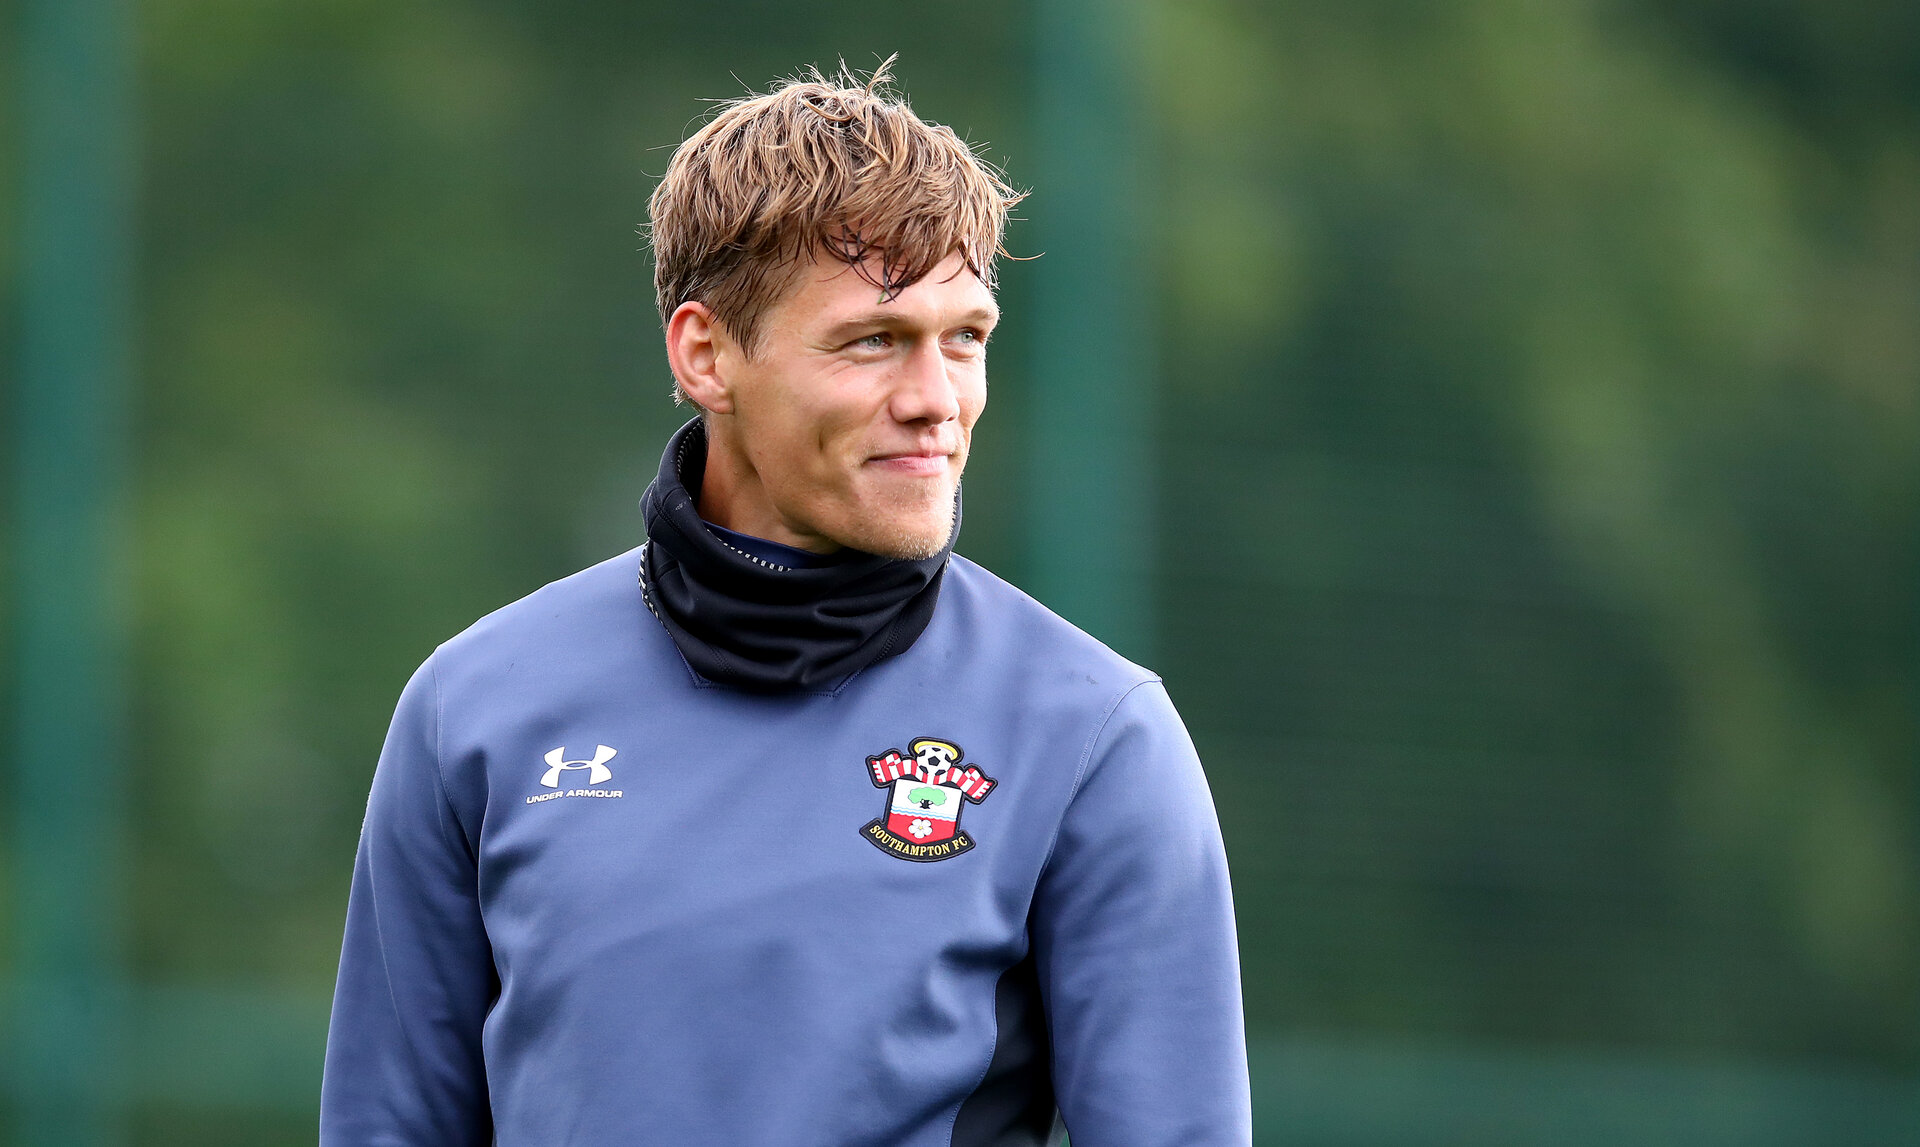 SOUTHAMPTON, ENGLAND - OCTOBER 02: Jannik Vestergaard during a Southampton FC training session at the Staplewood Campus on October 02, 2020 in Southampton, England. (Photo by Matt Watson/Southampton FC via Getty Images)